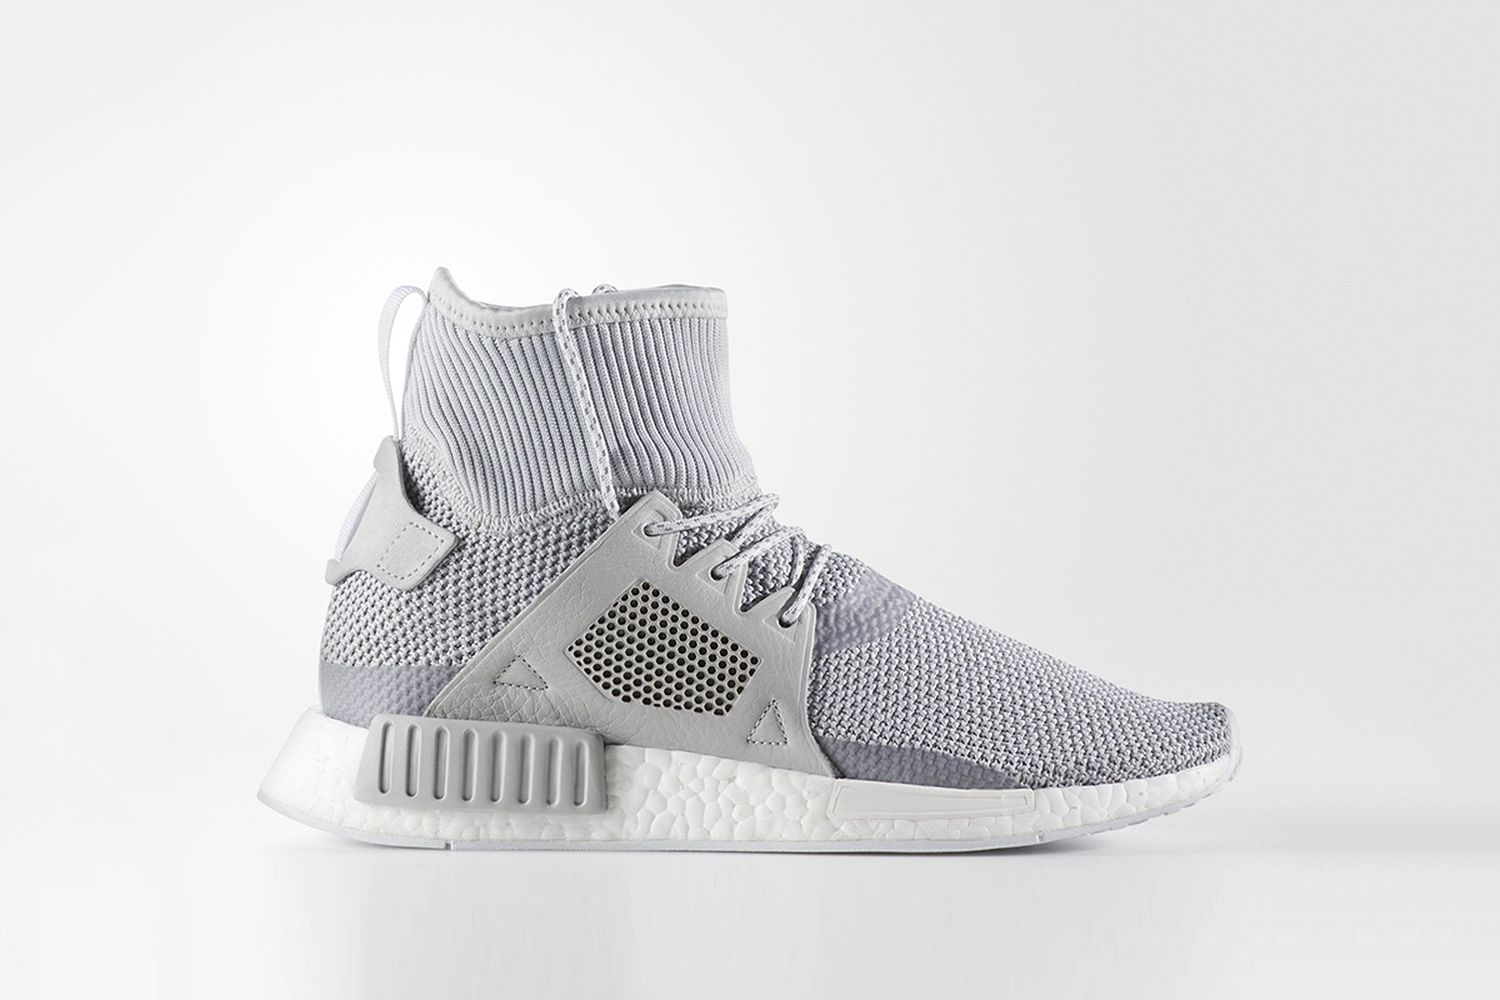 NMD_XR1 Winter